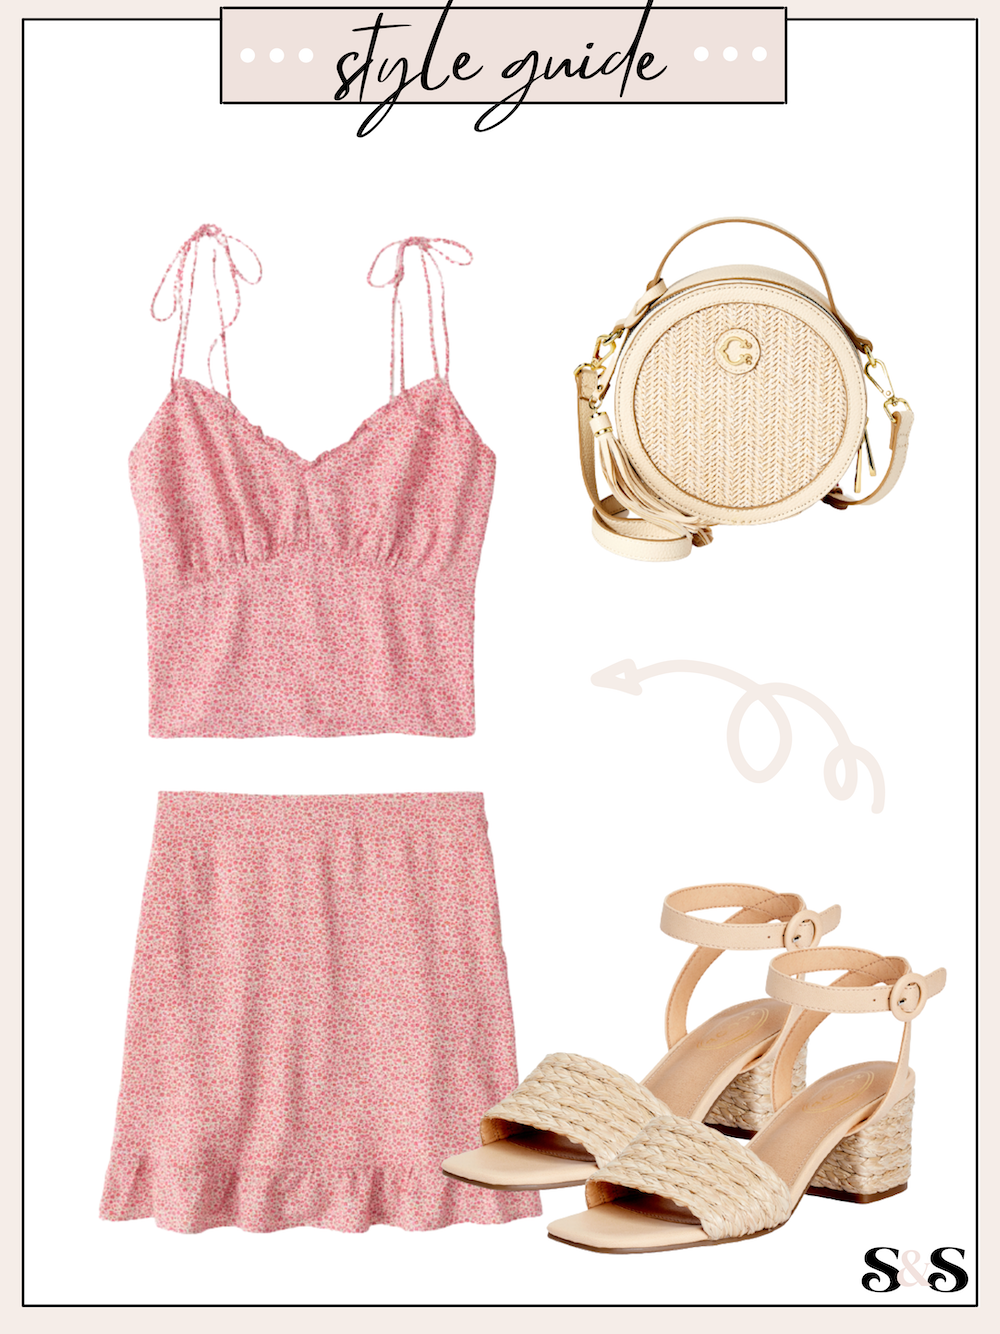 straw-bag-outfit